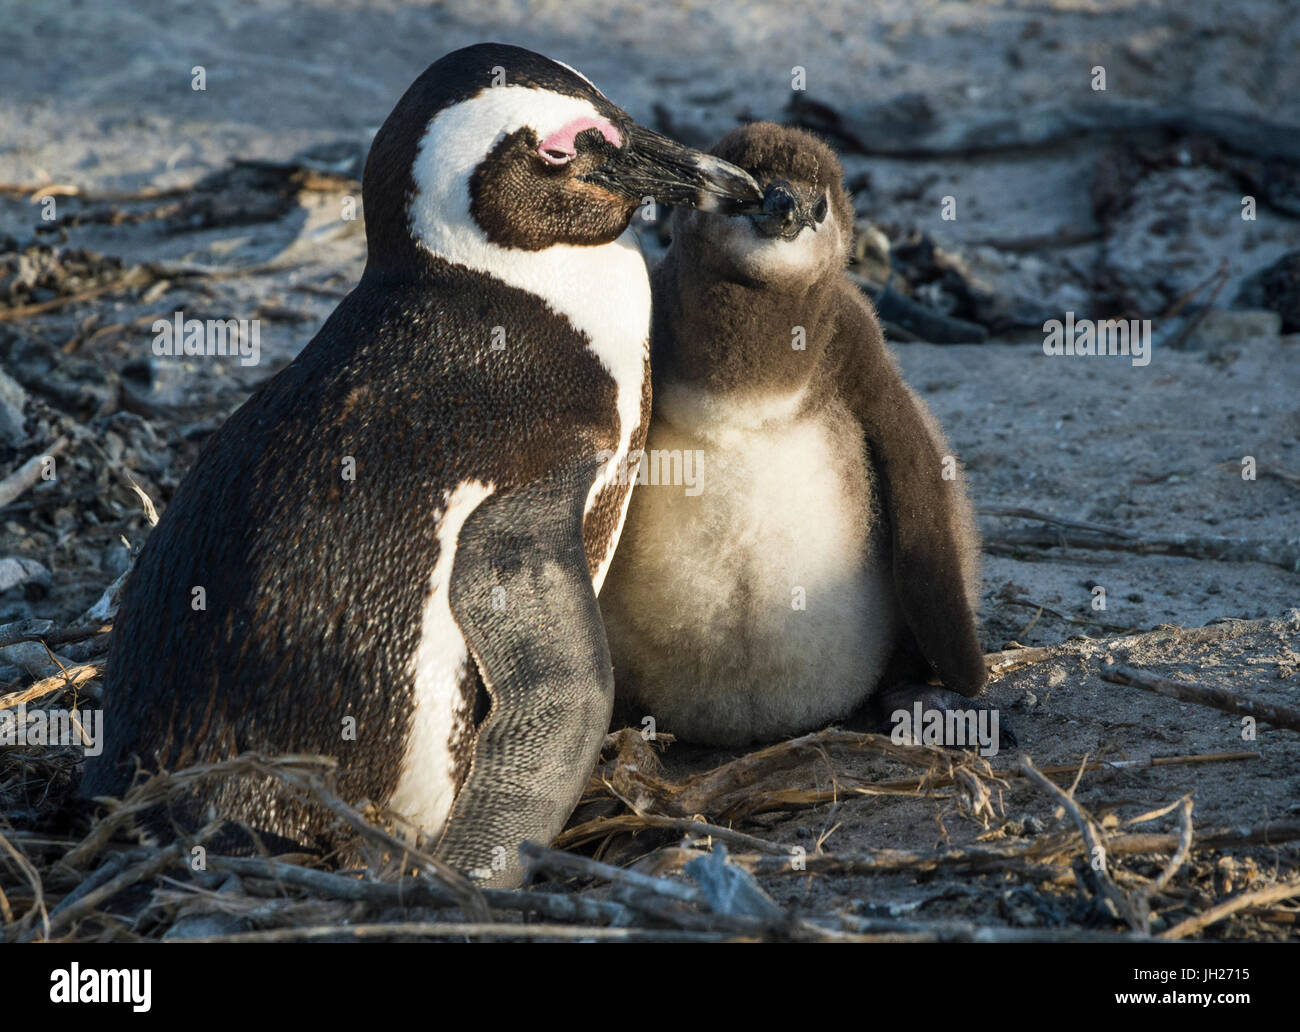 African penguins (jackass penguins) (Spheniscus demersus), Boulders Beach, Cape of Good Hope, South Africa, Africa - Stock Image